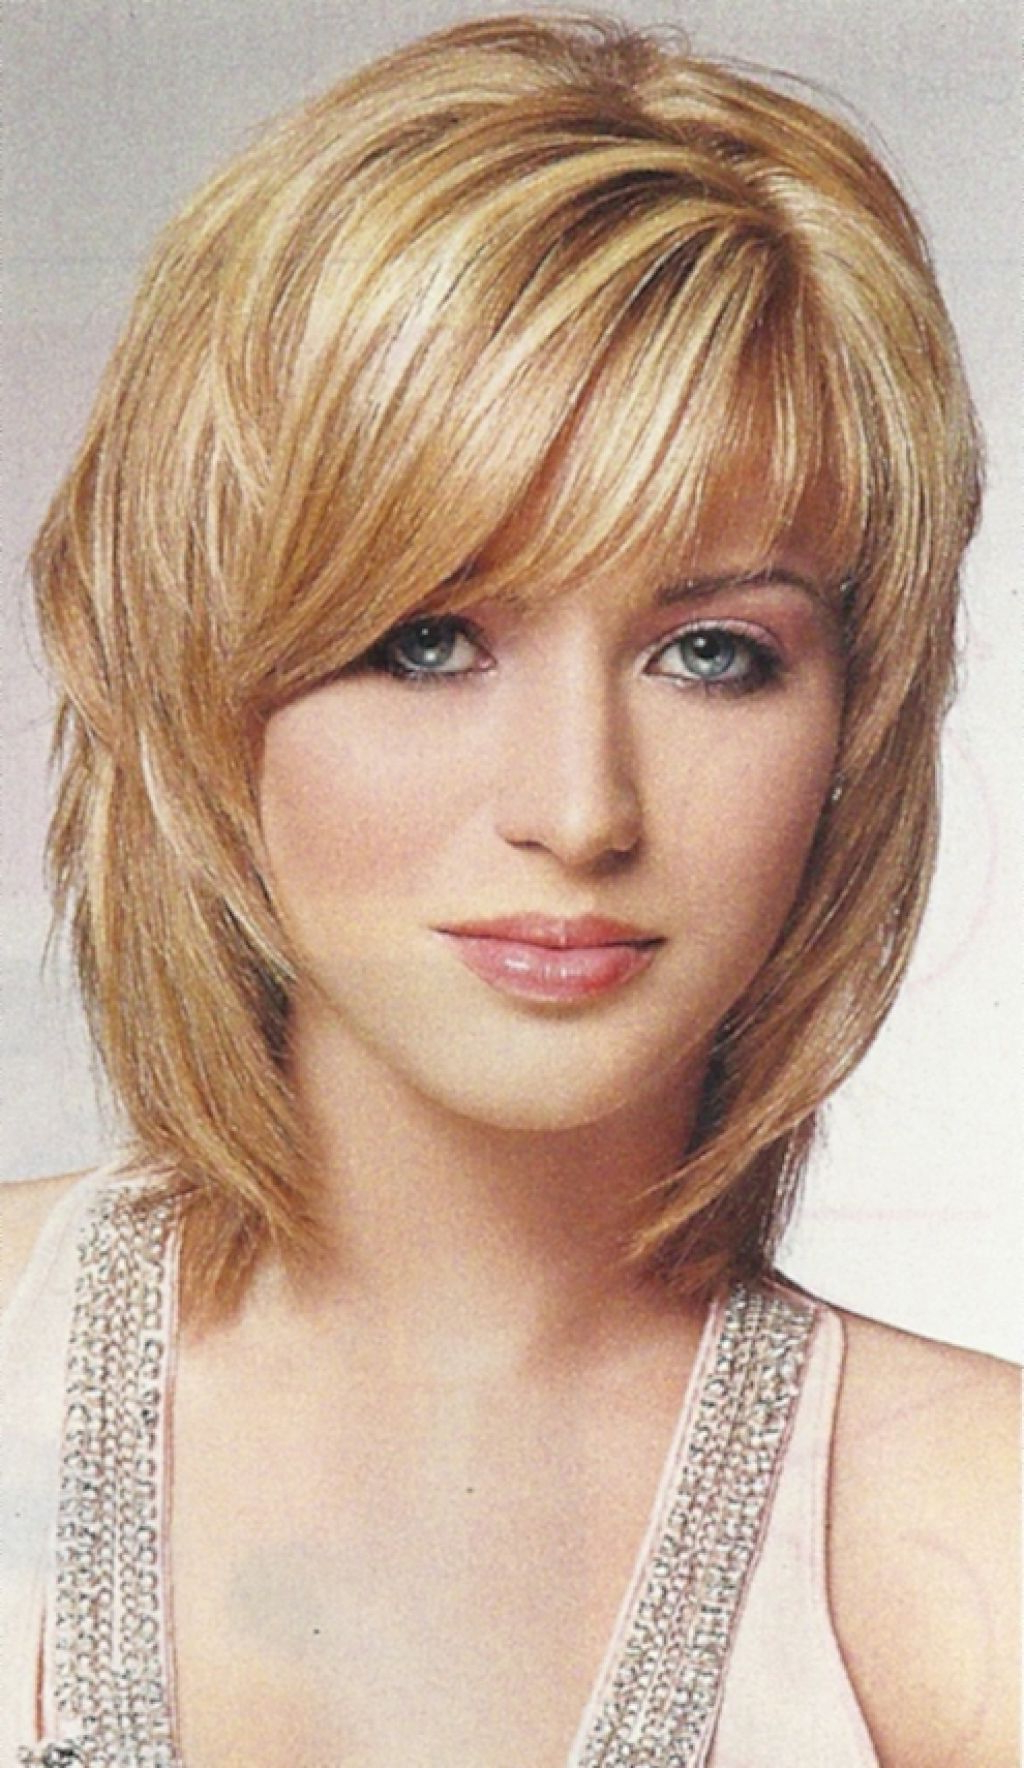 Medium Haircut Ideas – Hairstyle For Women & Man Inside Medium Short Hairstyles Round Faces (View 19 of 25)